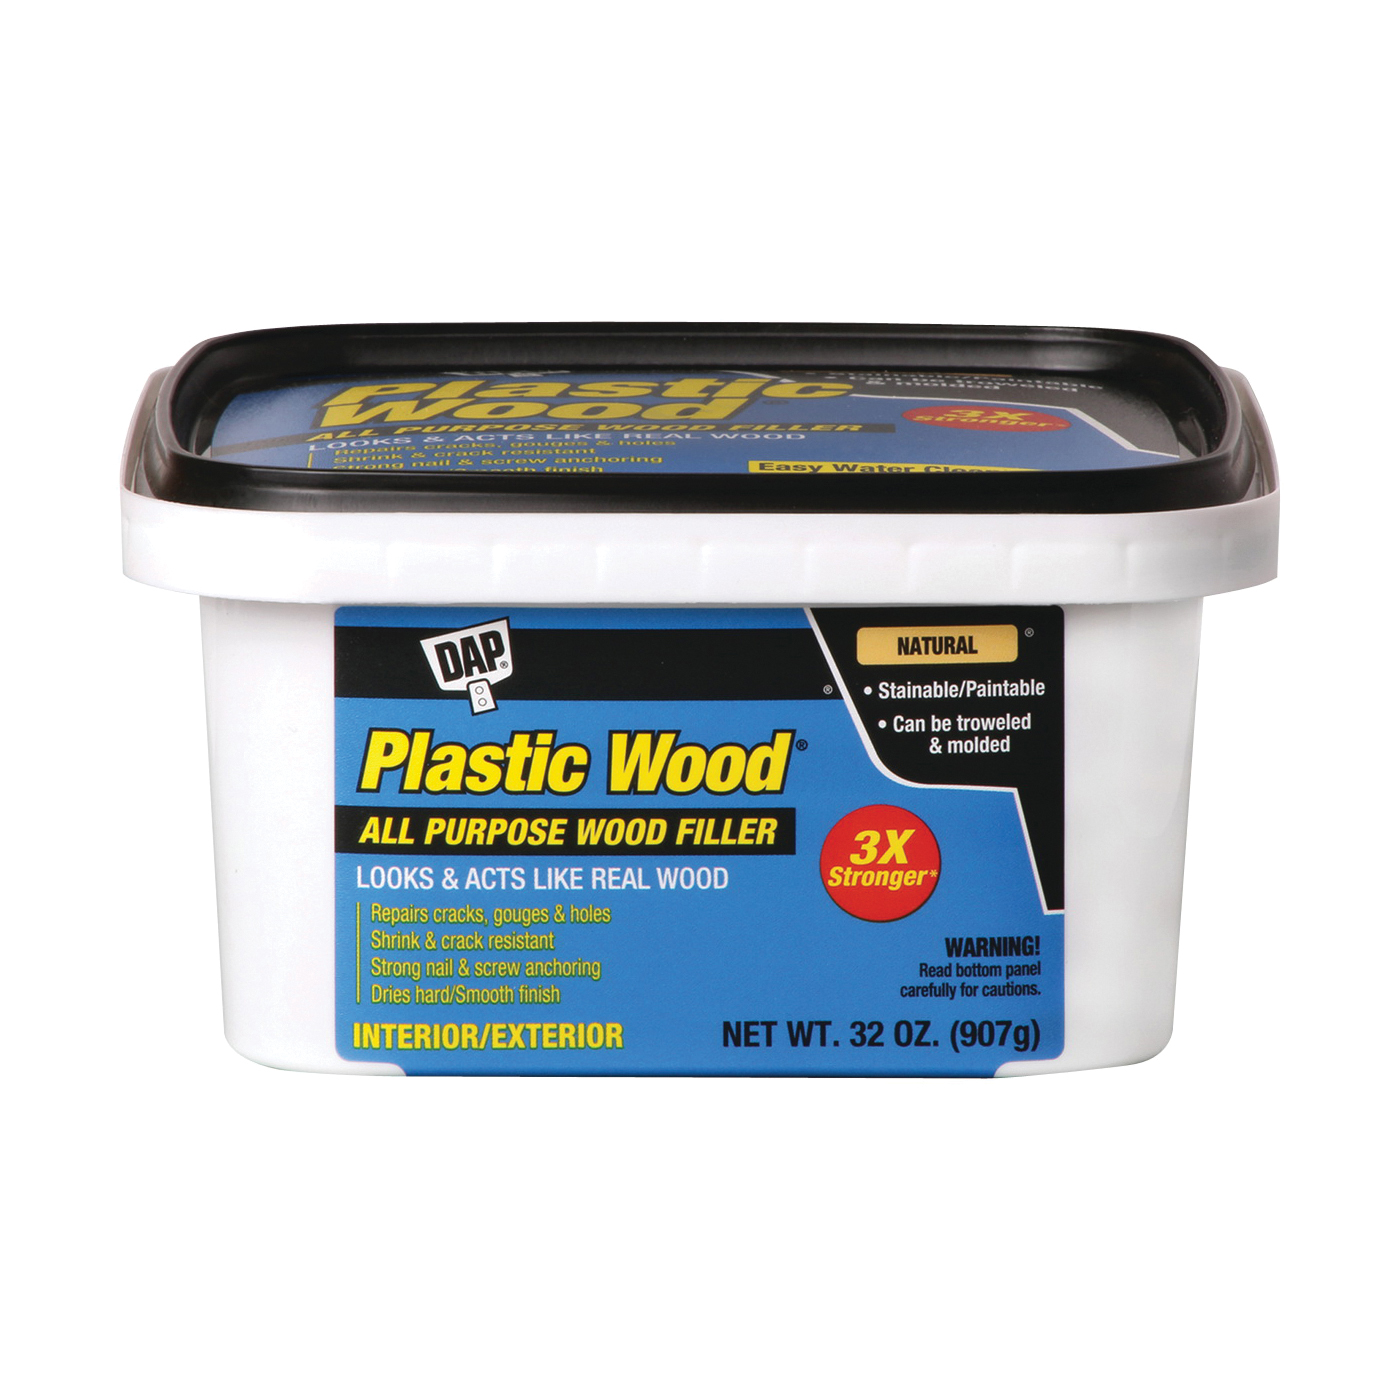 Picture of DAP Plastic Wood 00525 Wood Filler, Paste, Musty, Natural, 32 oz Package